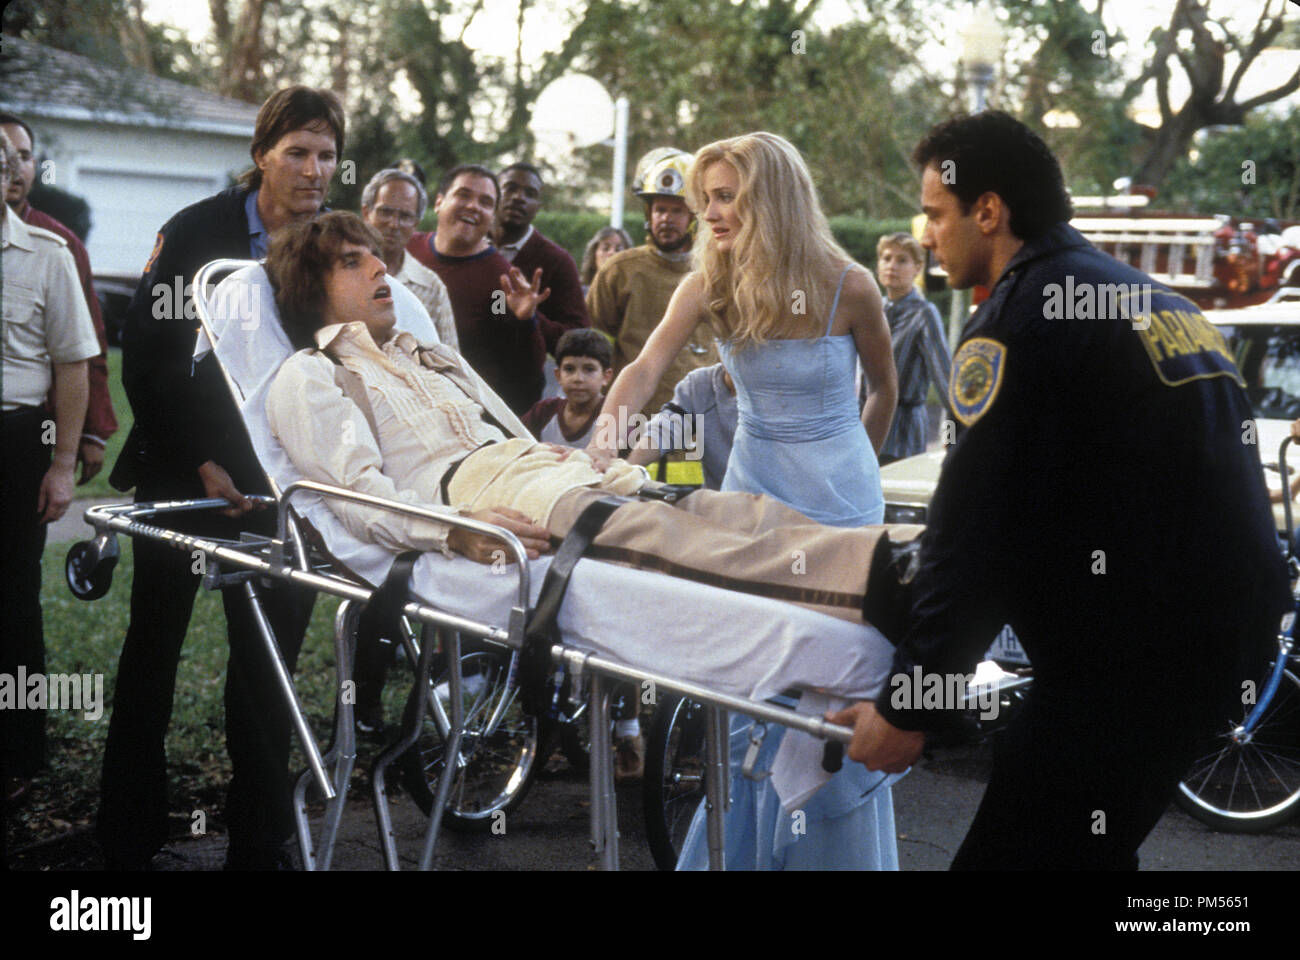 There's Something About Mary 1998 Ben Stiller, Cameron Diaz - Stock Image